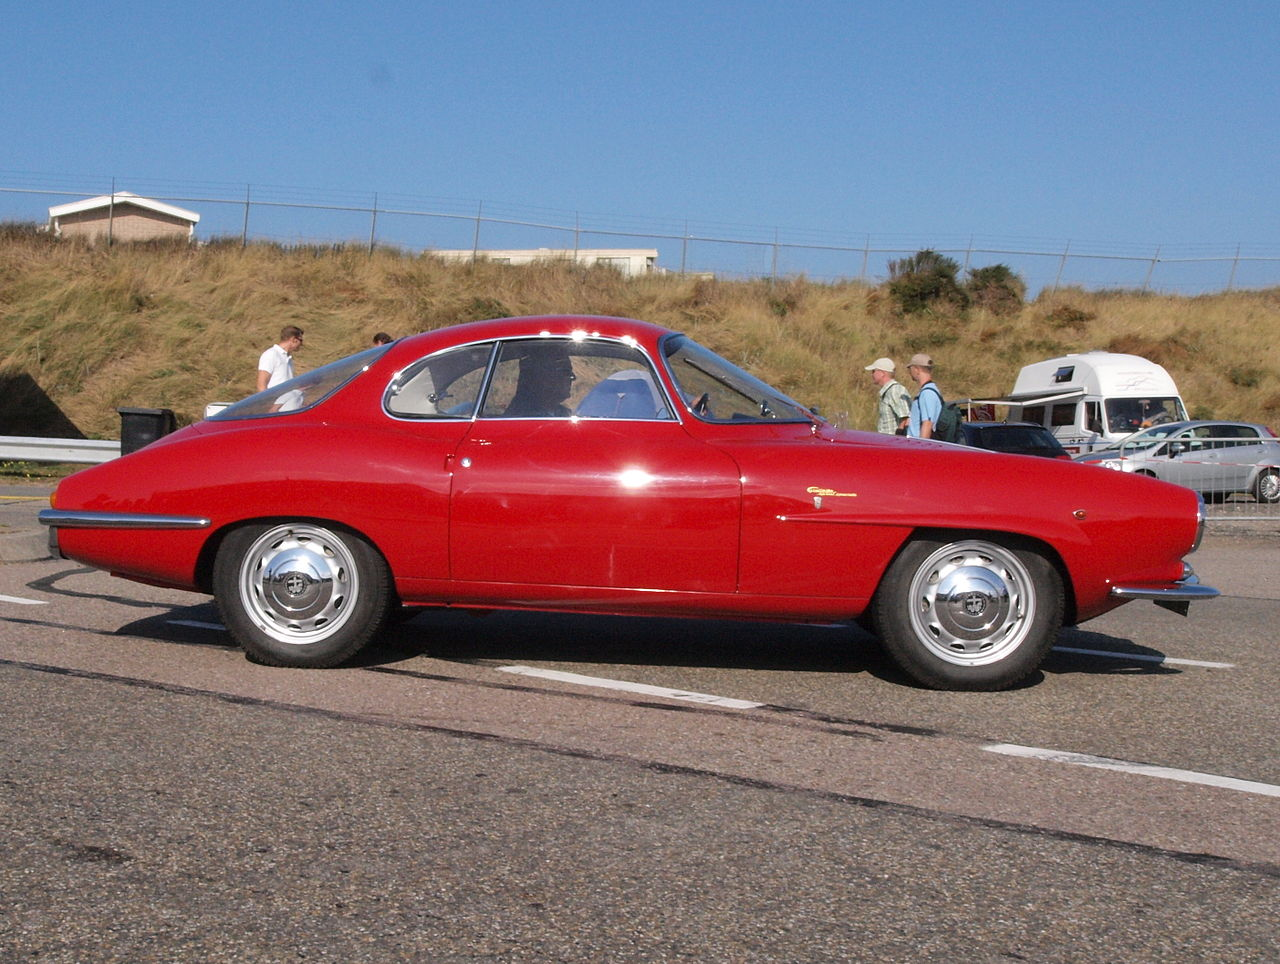 Filealfa Romeo Giulietta Sprint Special 1300 Dutch Licence 72 Road Runner Wiring Diagram Registration Ah 70 39 Pic4